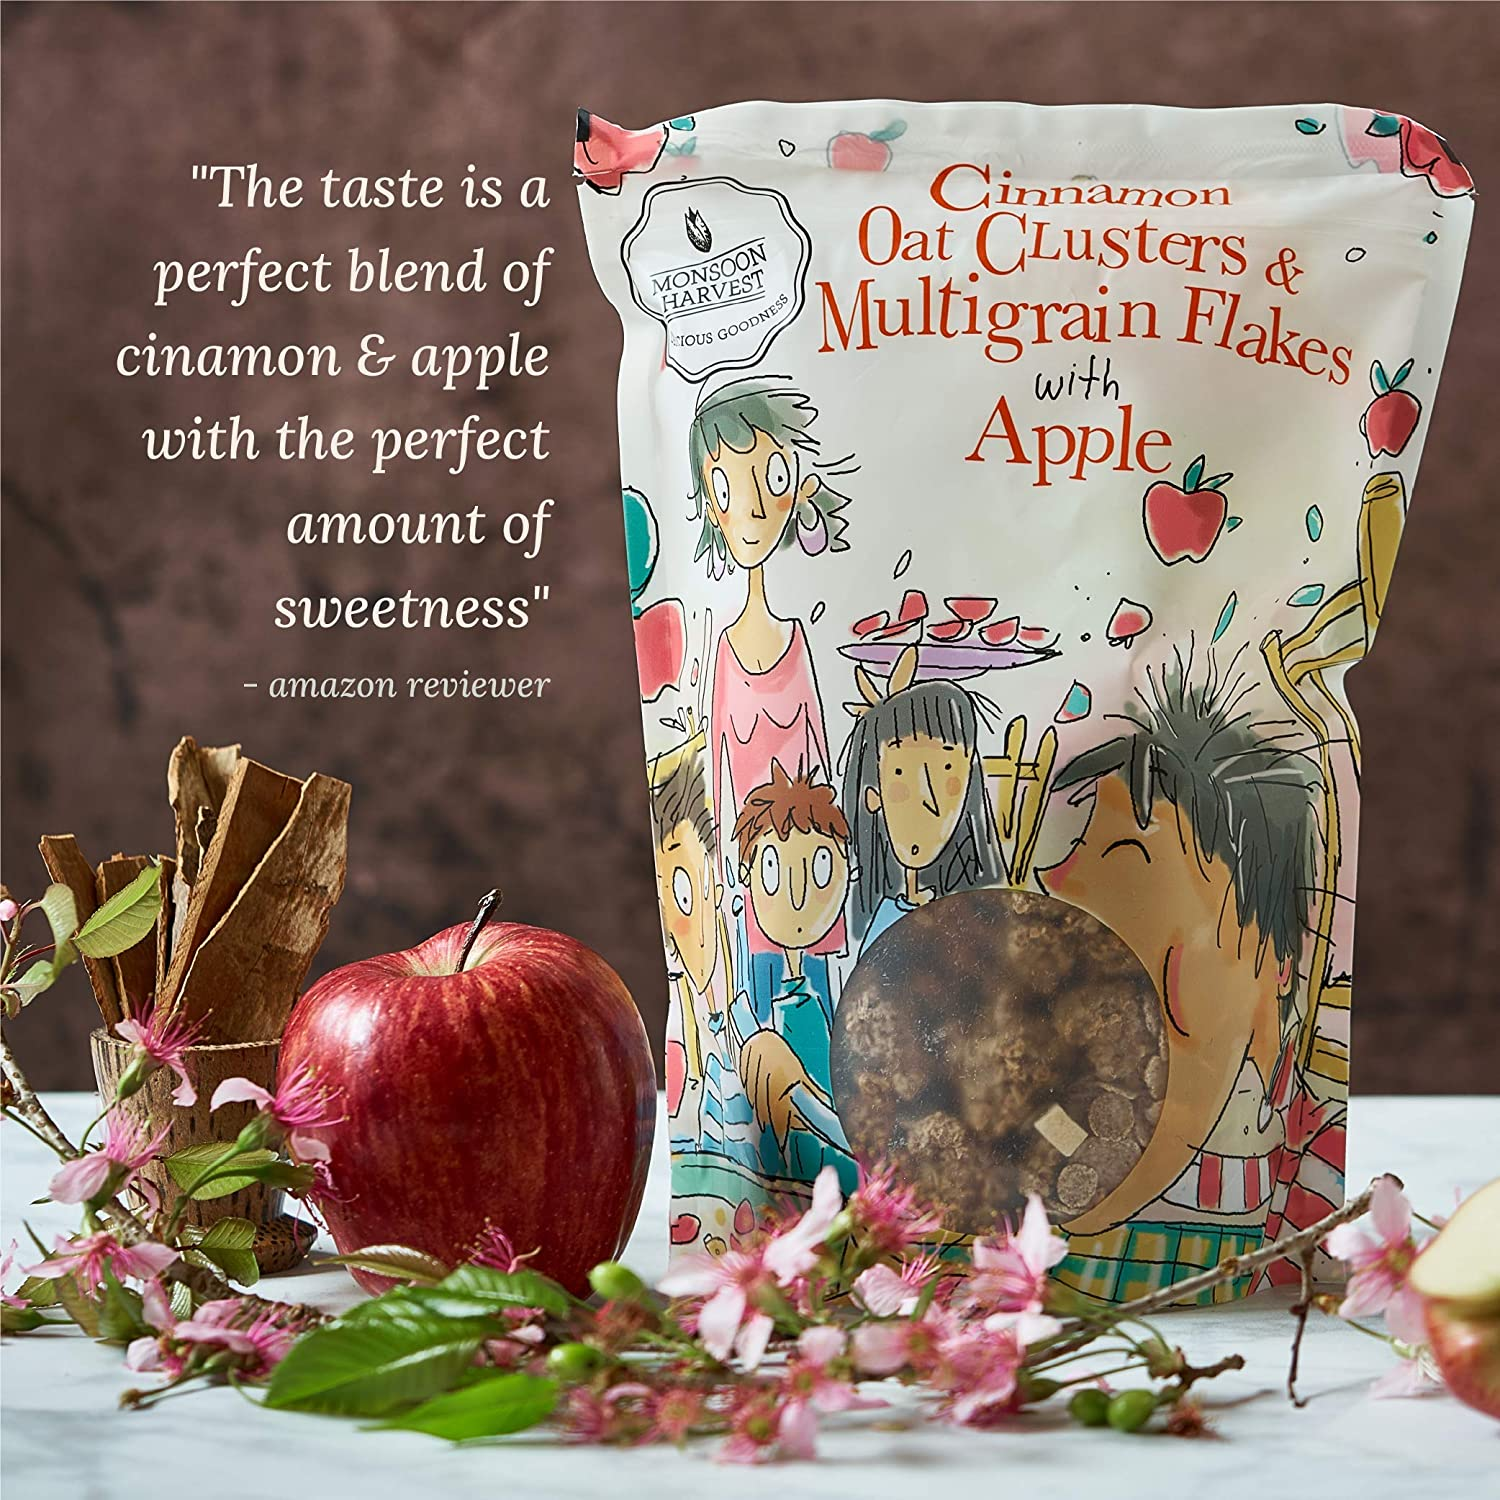 Monsoon Harvest Cinnamon Oats Clusters and Multigrain Flakes with Apple